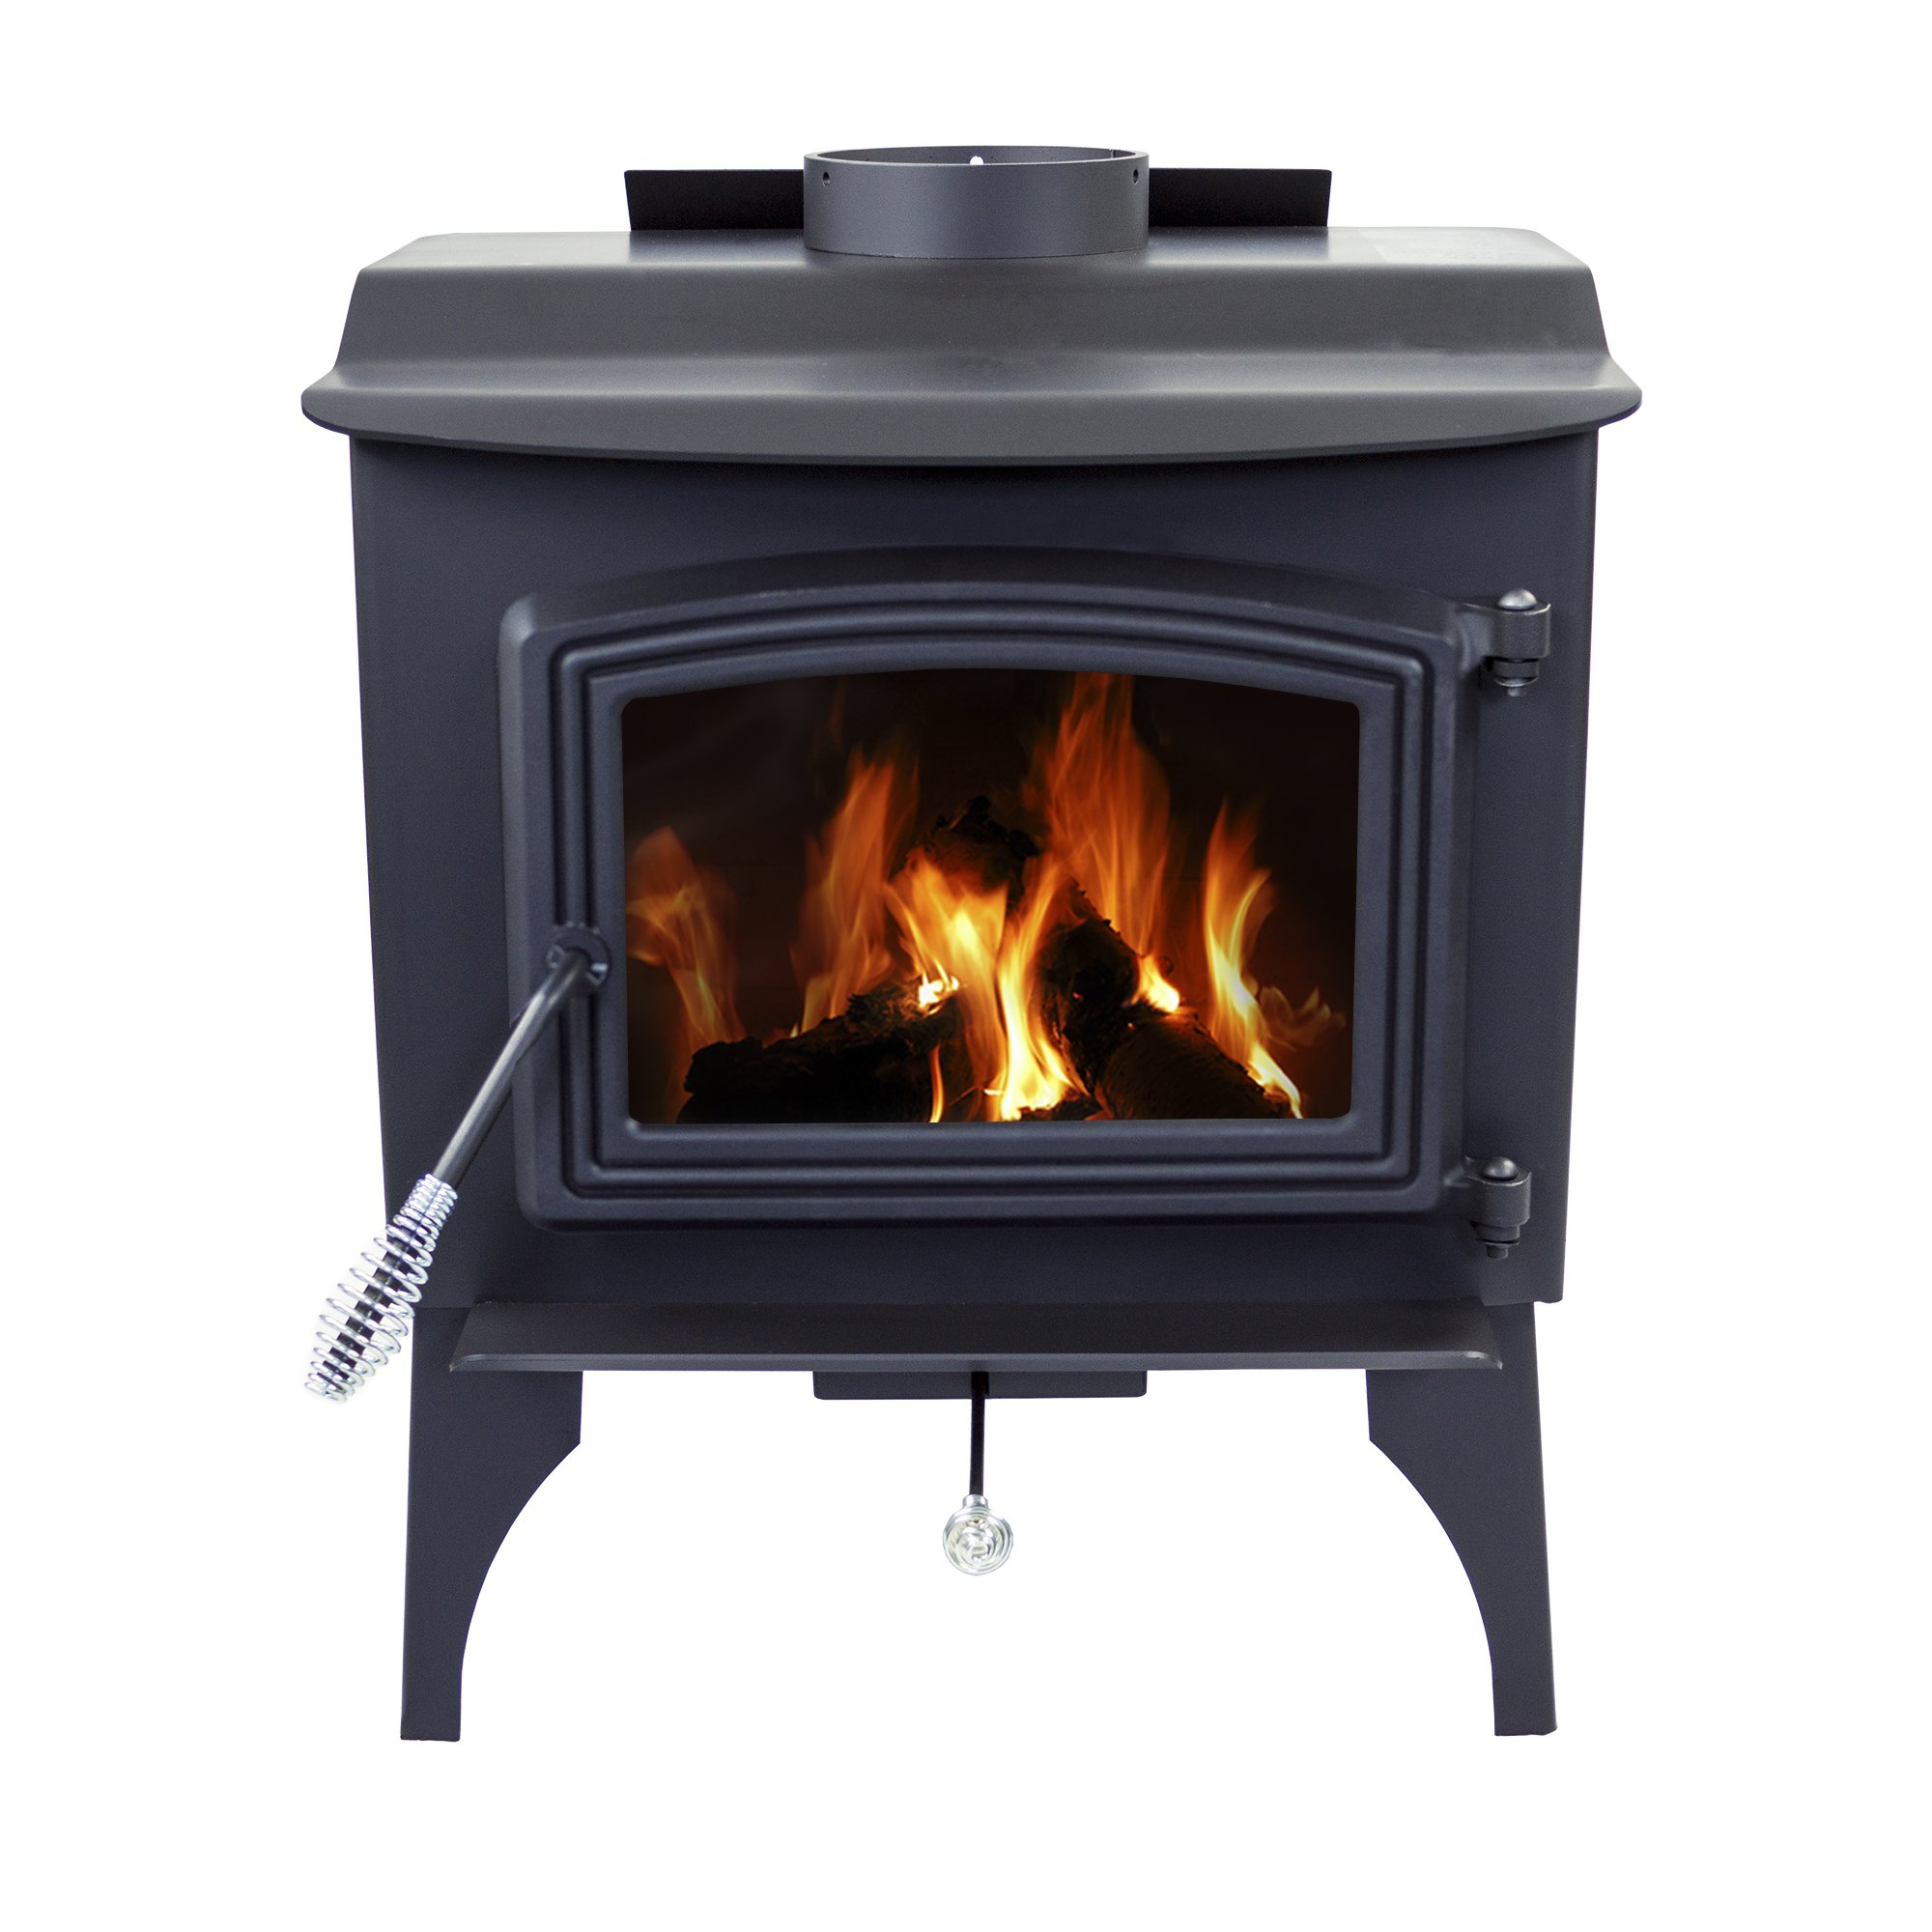 Pleasant Hearth 1,200 Sq. Ft. Small Wood Burning Stove by Pleasant Hearth